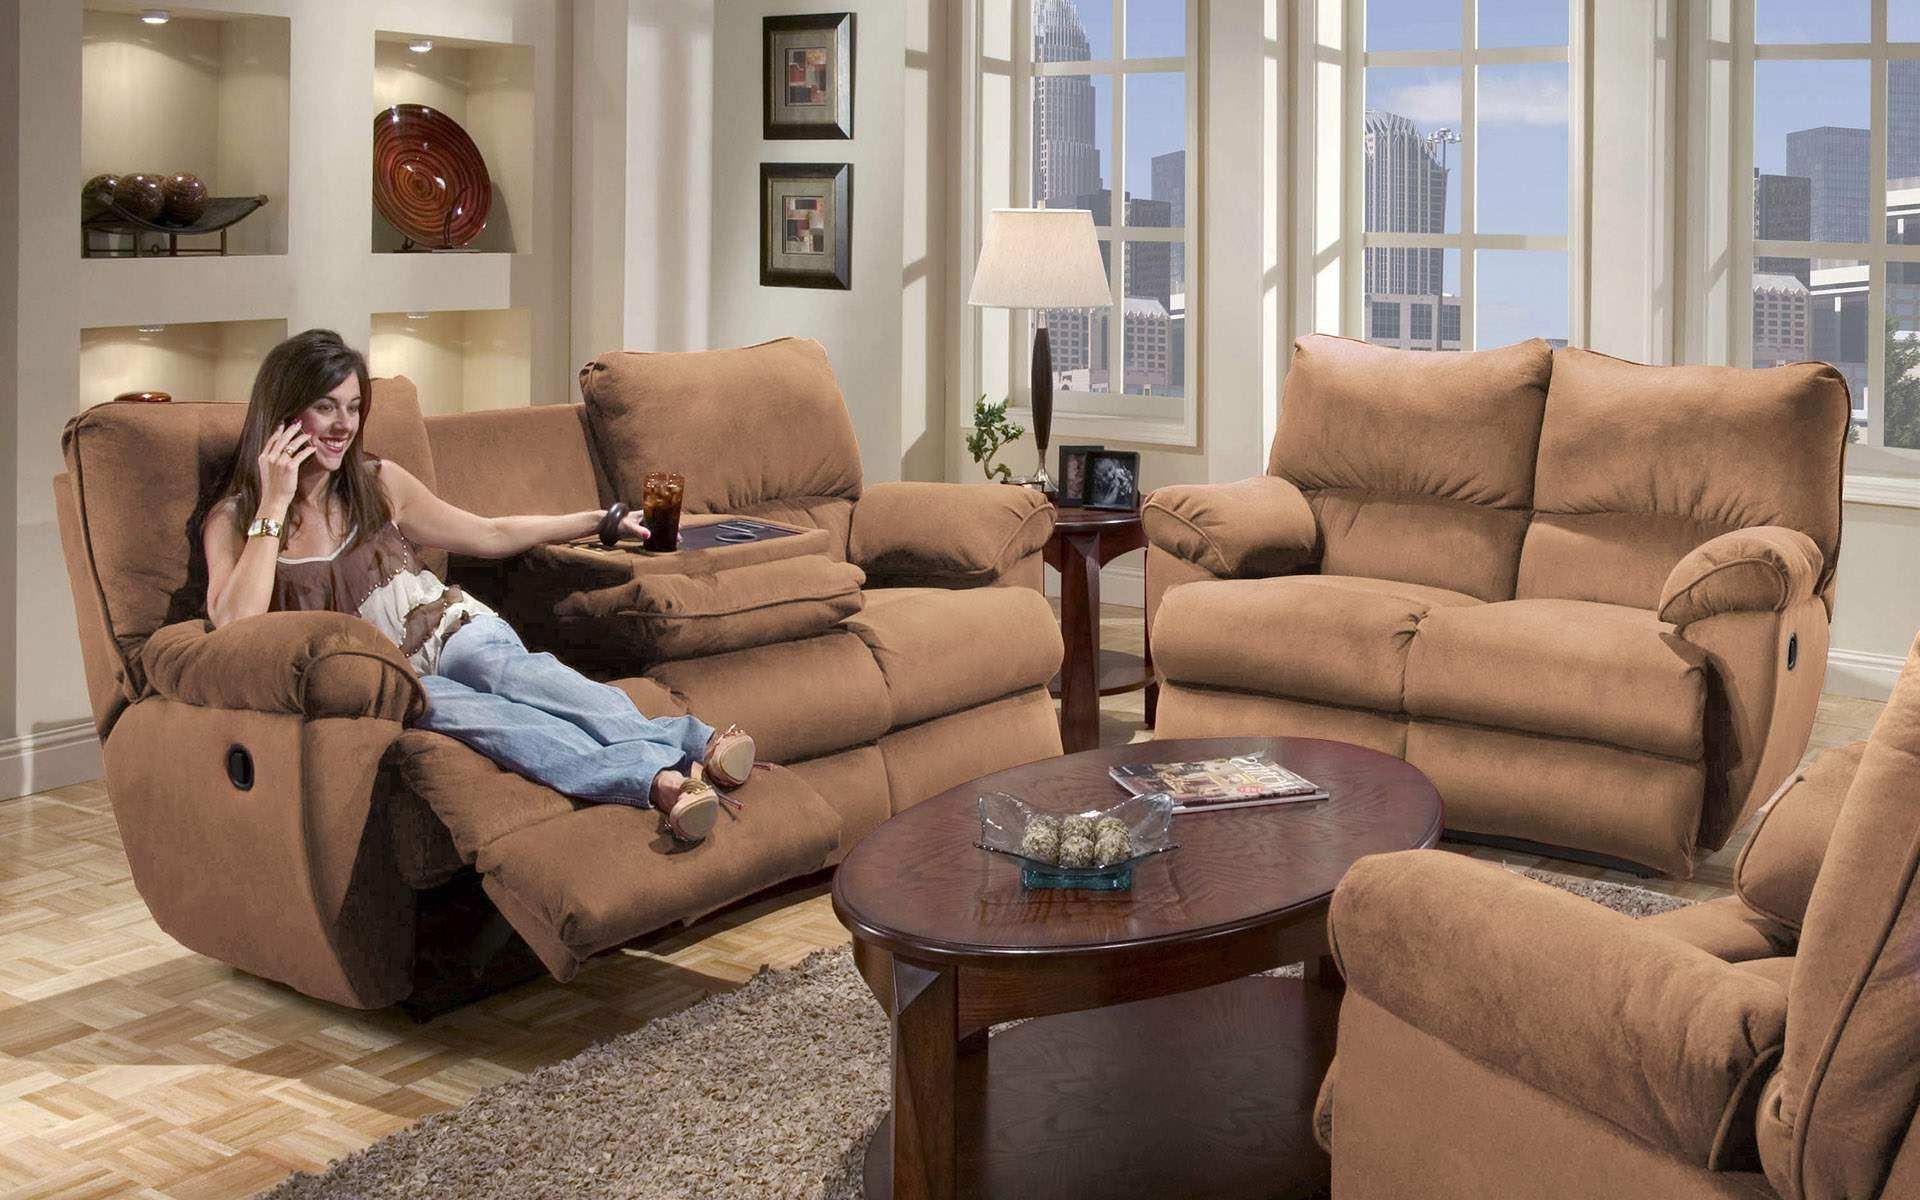 Cozy Sectional Sofas Cleanupflorida With Cozy Sectional Sofas (#7 of 12)